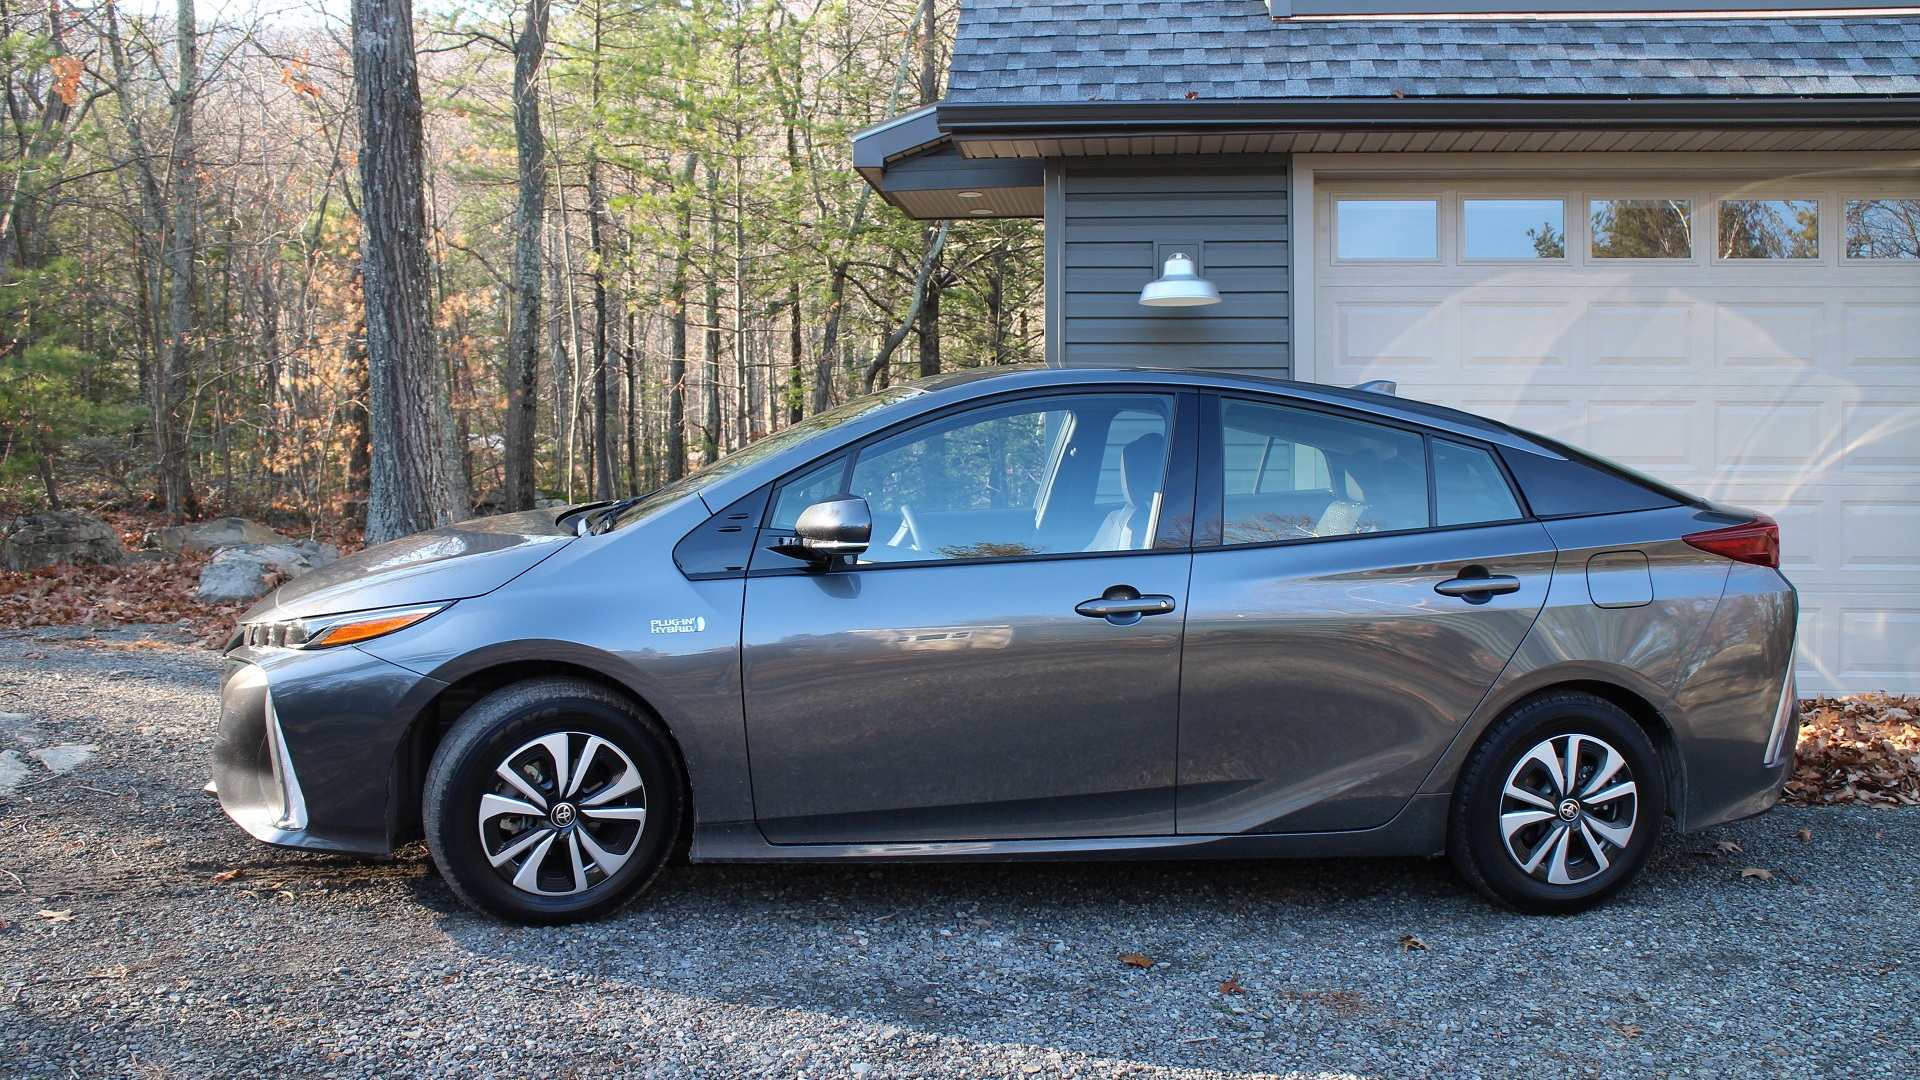 2017 Toyota Prius Prime, Catskill Mountains, NY, Nov 2016